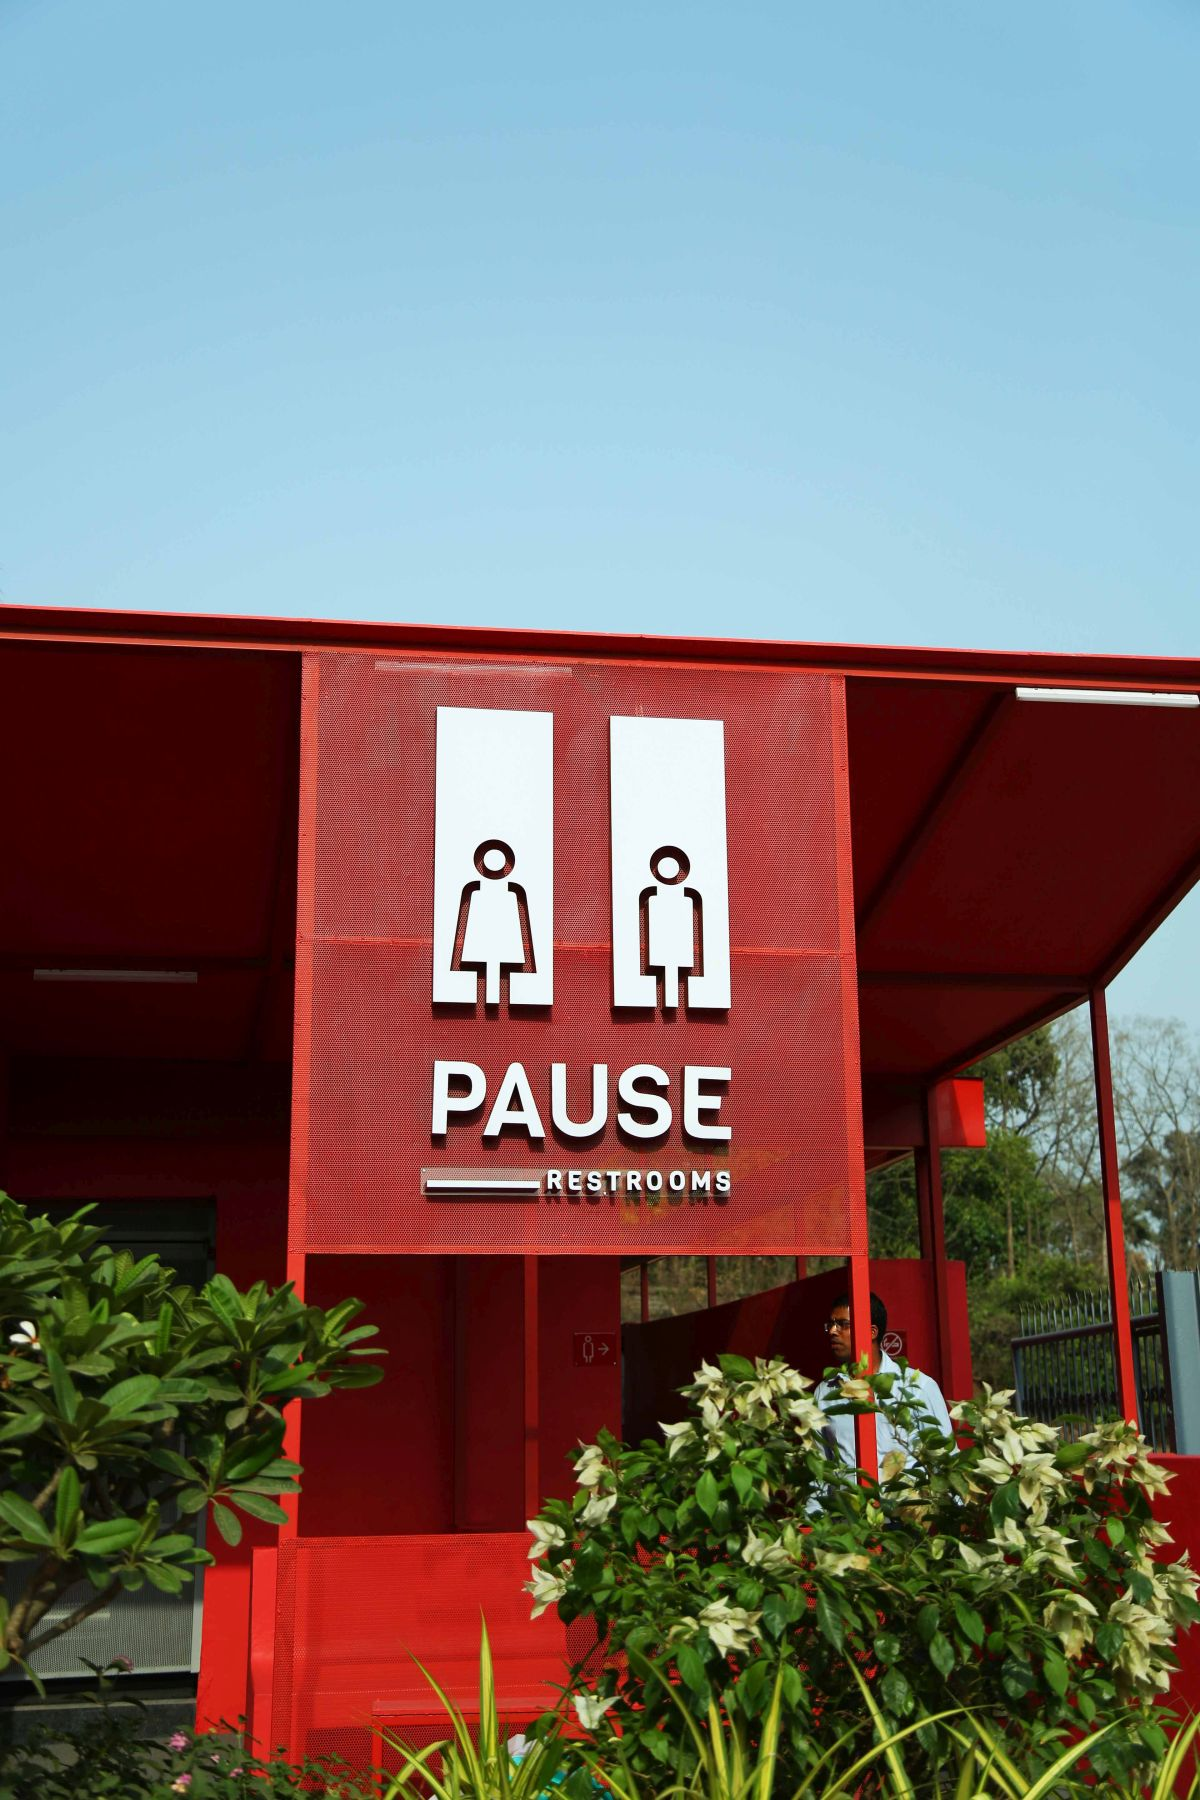 Pause - Restrooms, at Bombay-Goa Highway, by RC Architects 59